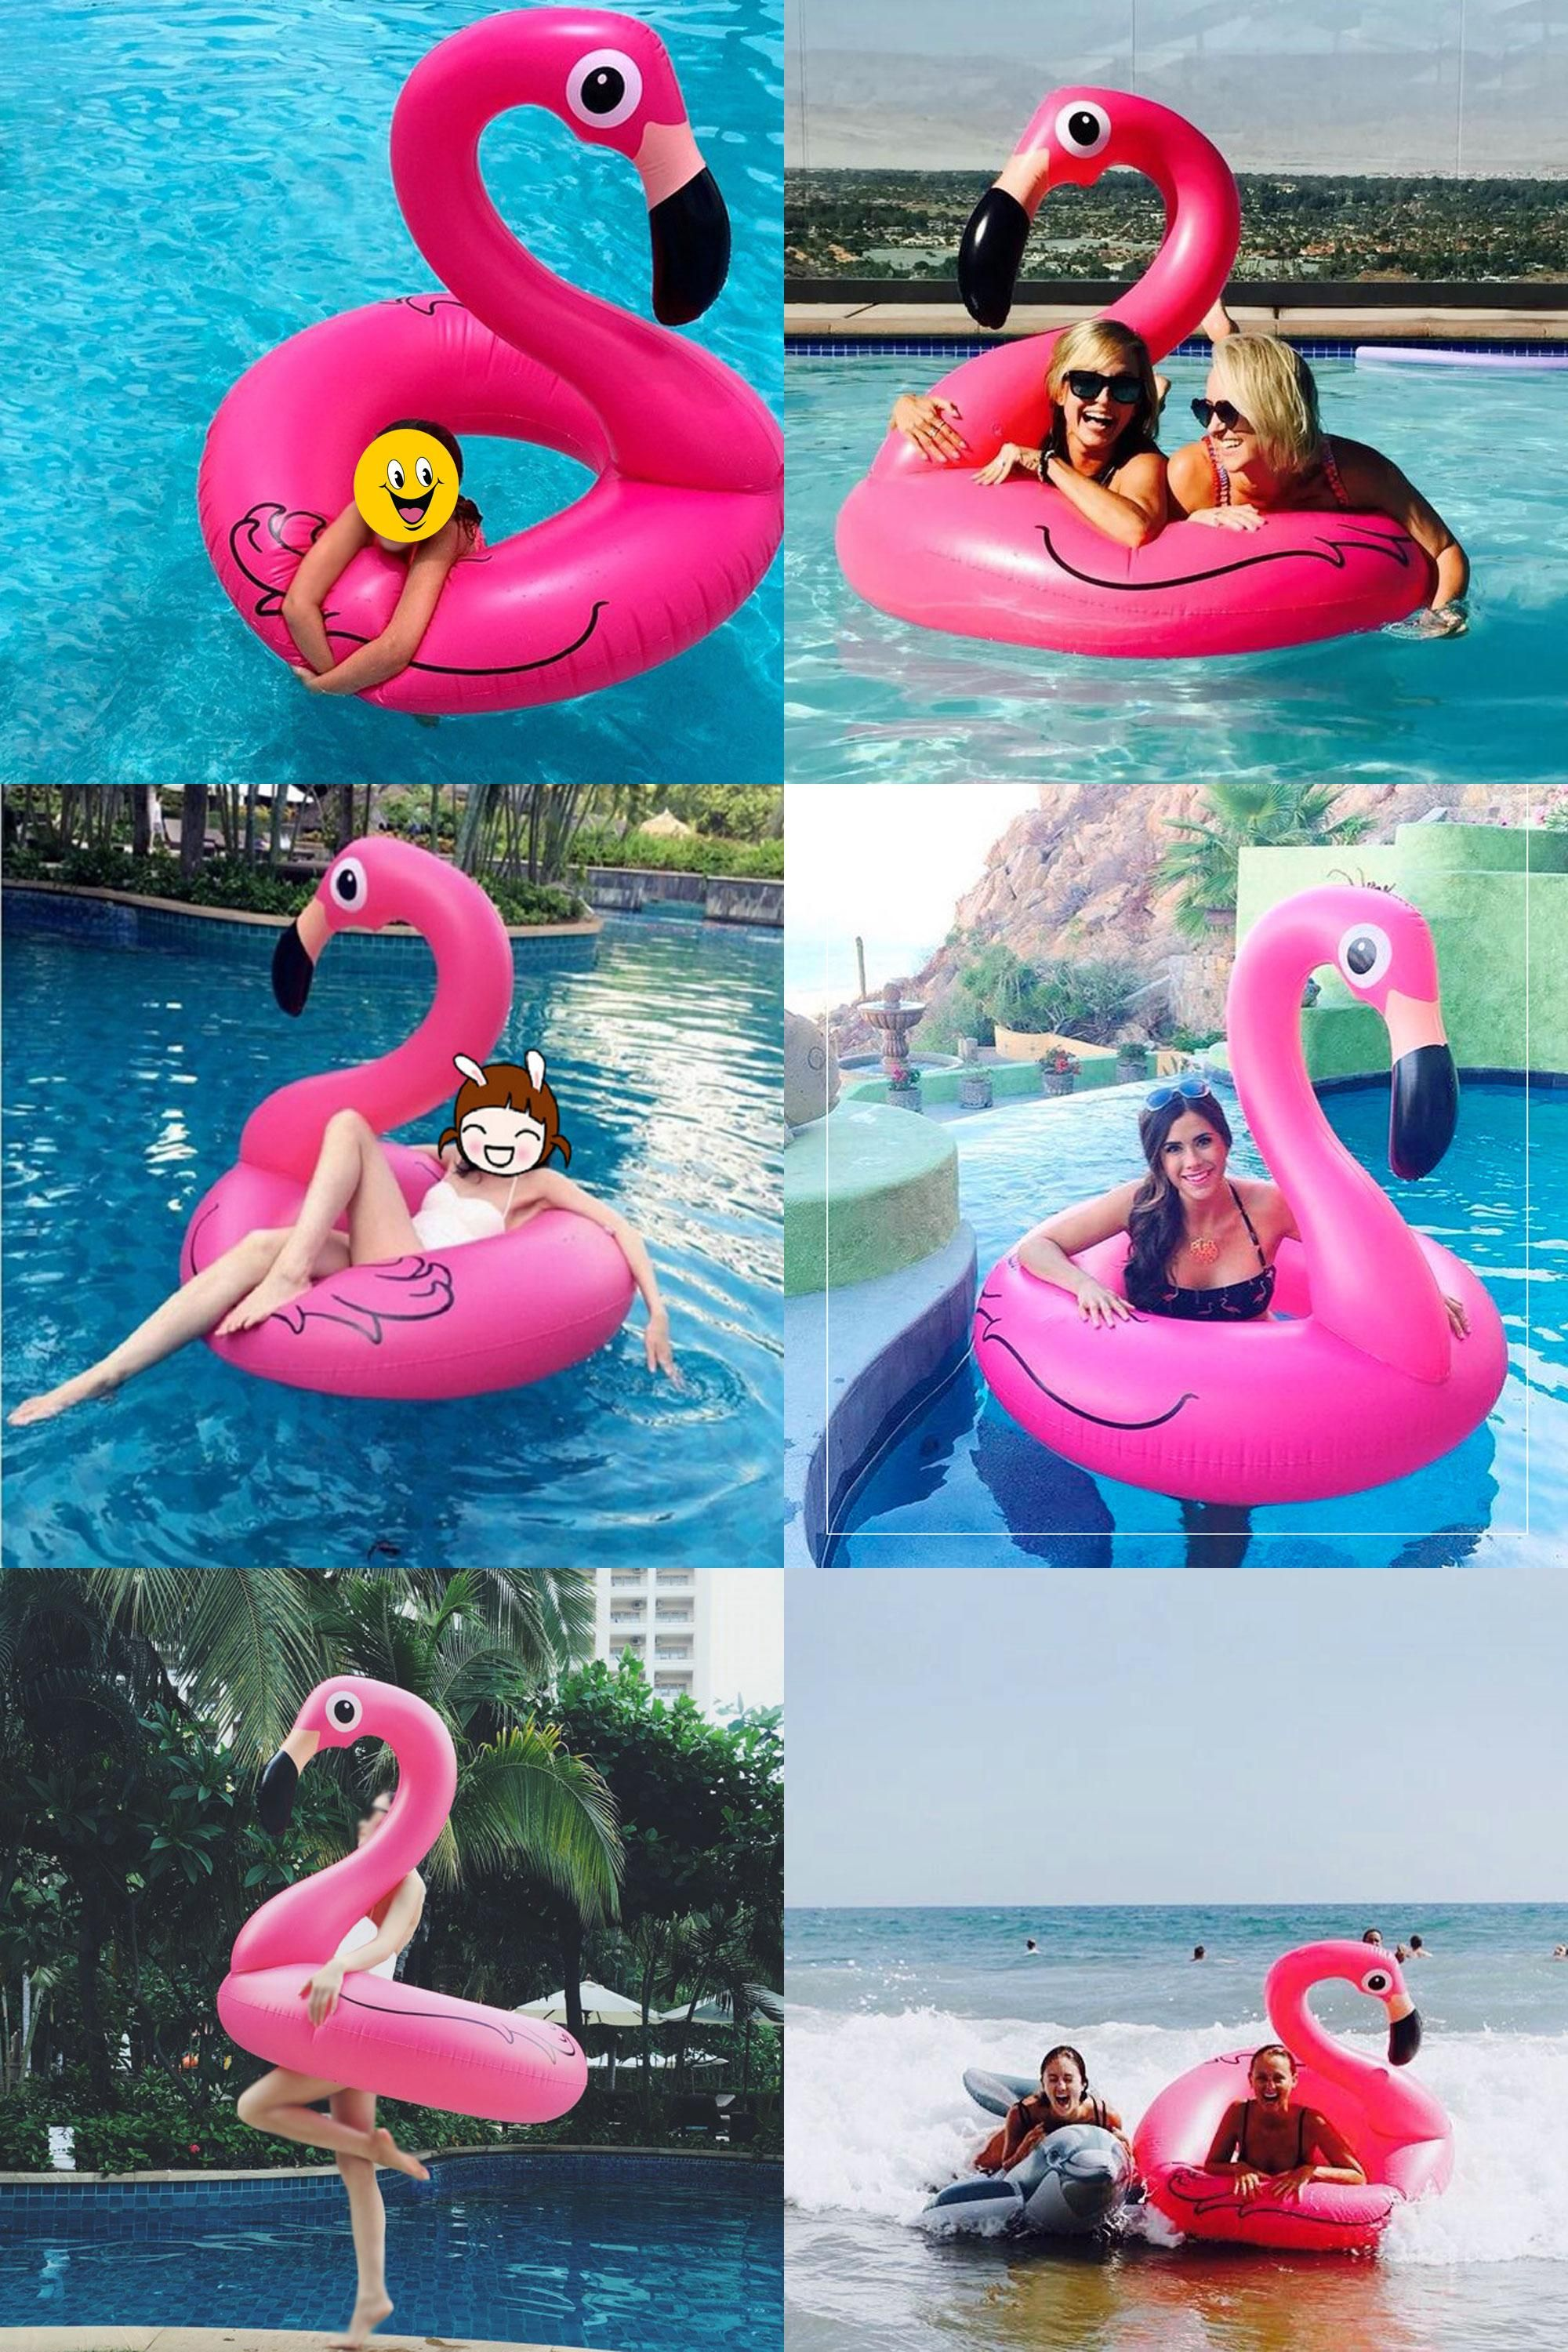 Visit to Buy] Inflatable Flamingo Pool Float Circle Air Mattress